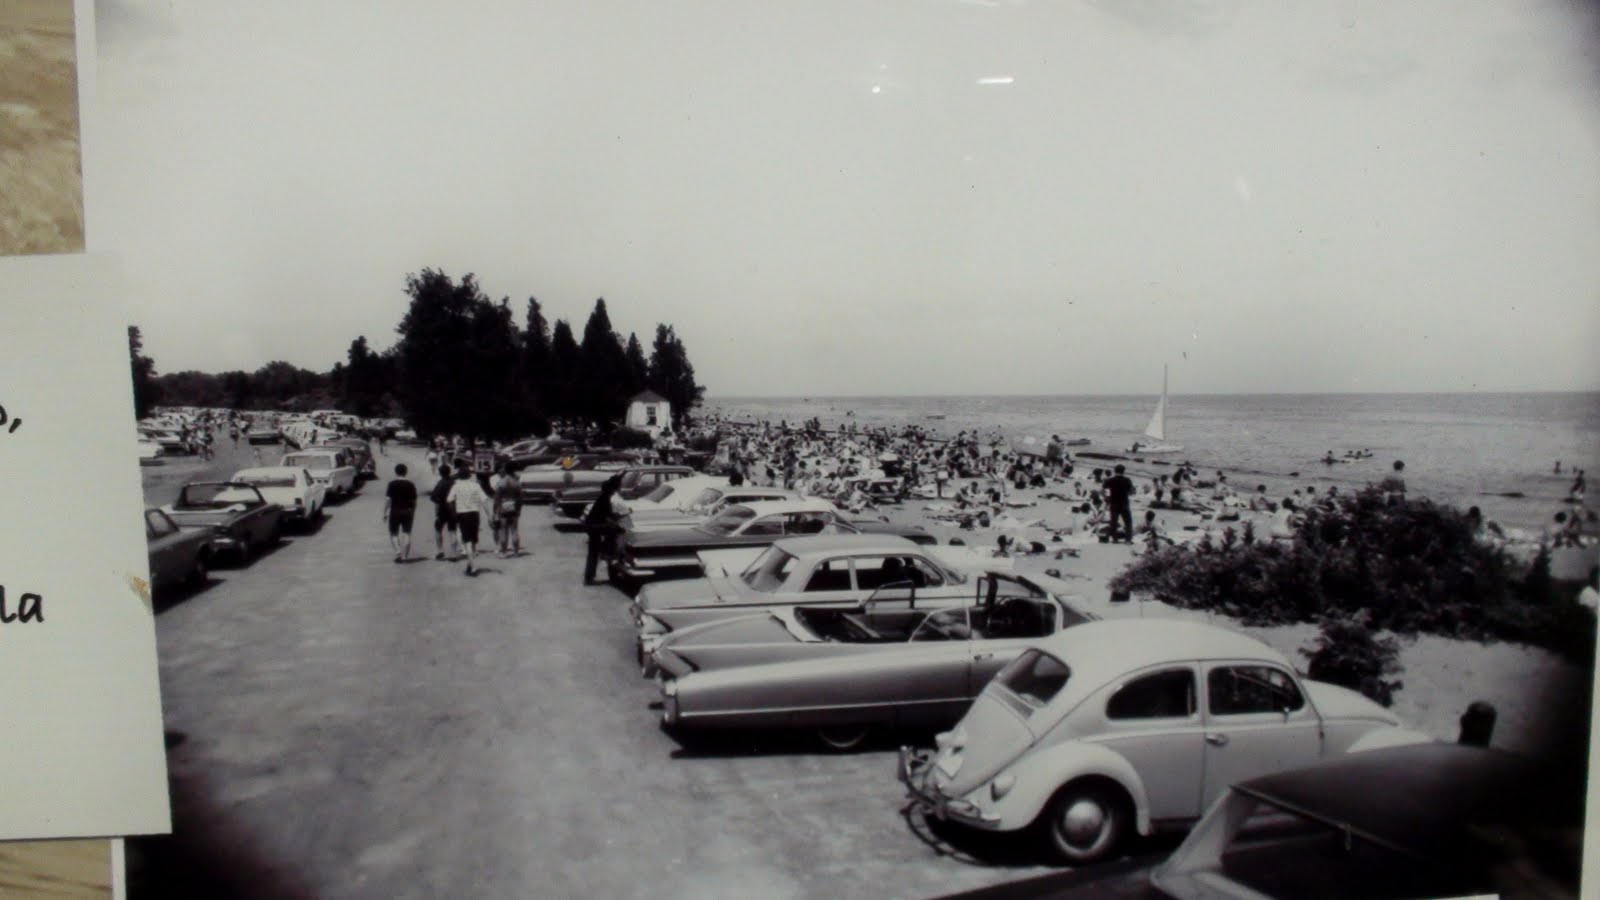 Beach with cars and people.